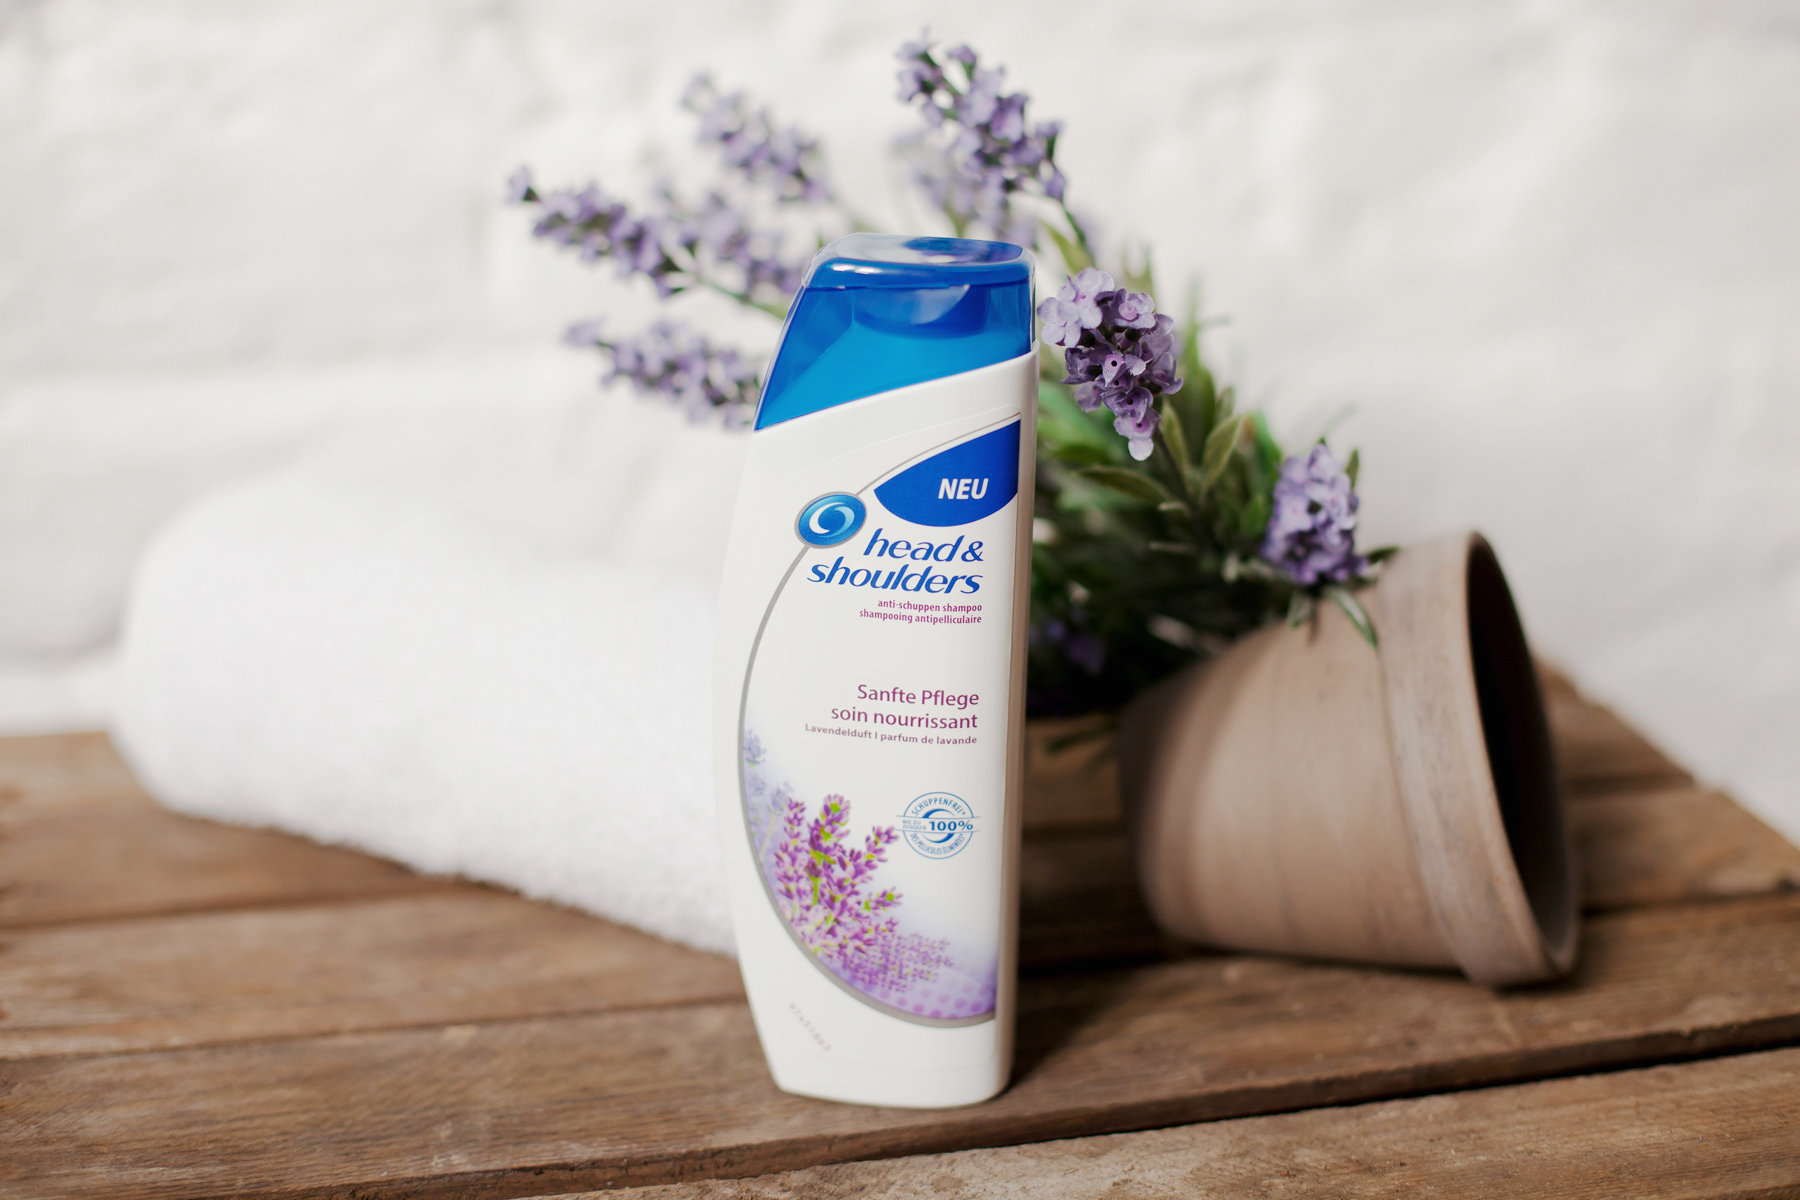 head & shoulders sanfte pflege lavendelduft lavendel lavender scent soin doux beauty beautyblogger product review haircare hair care antischuppen shampoo cats & dogs blog wie hund und katze ricarda schernus blogger düsseldorf berlin 4